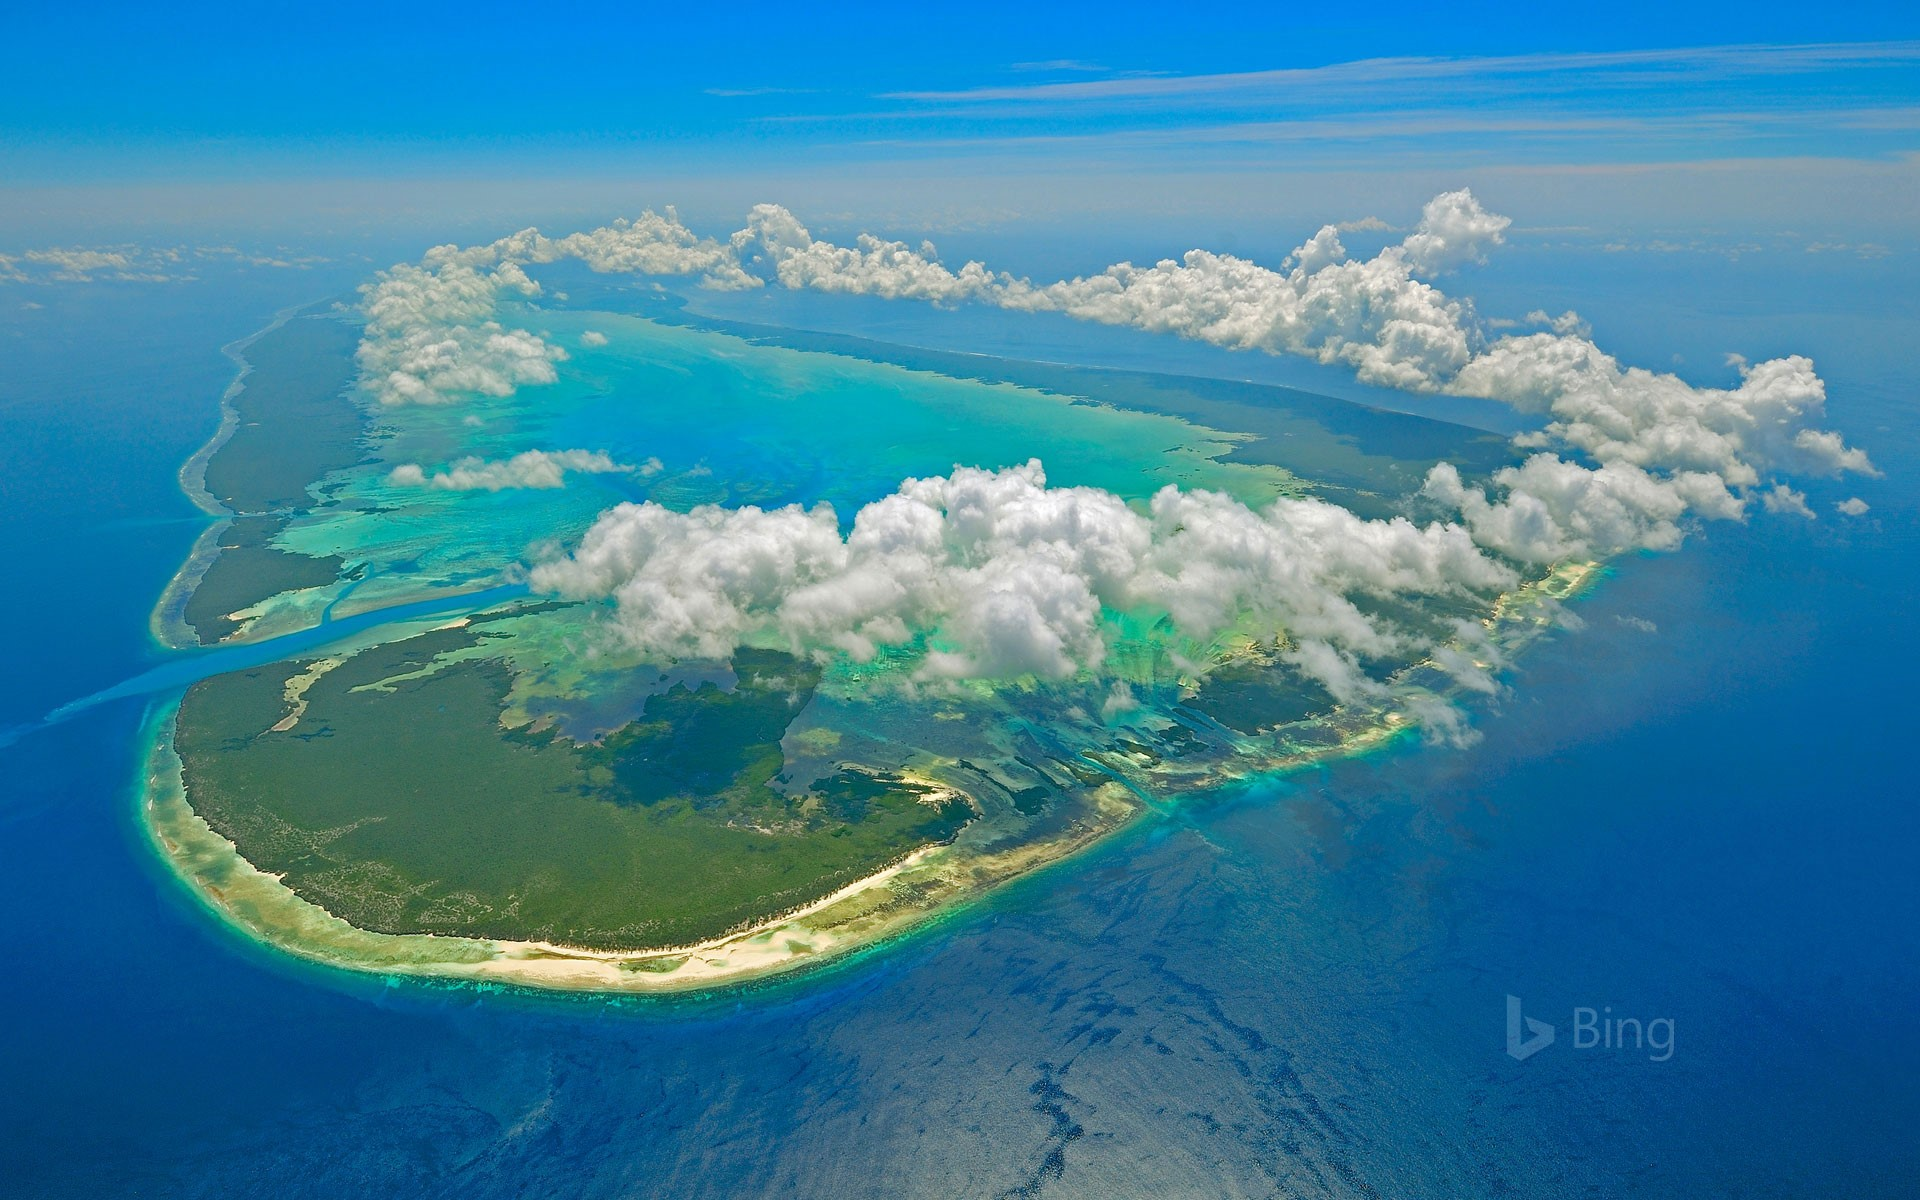 Aldabra of the Seychelles in the Indian Ocean